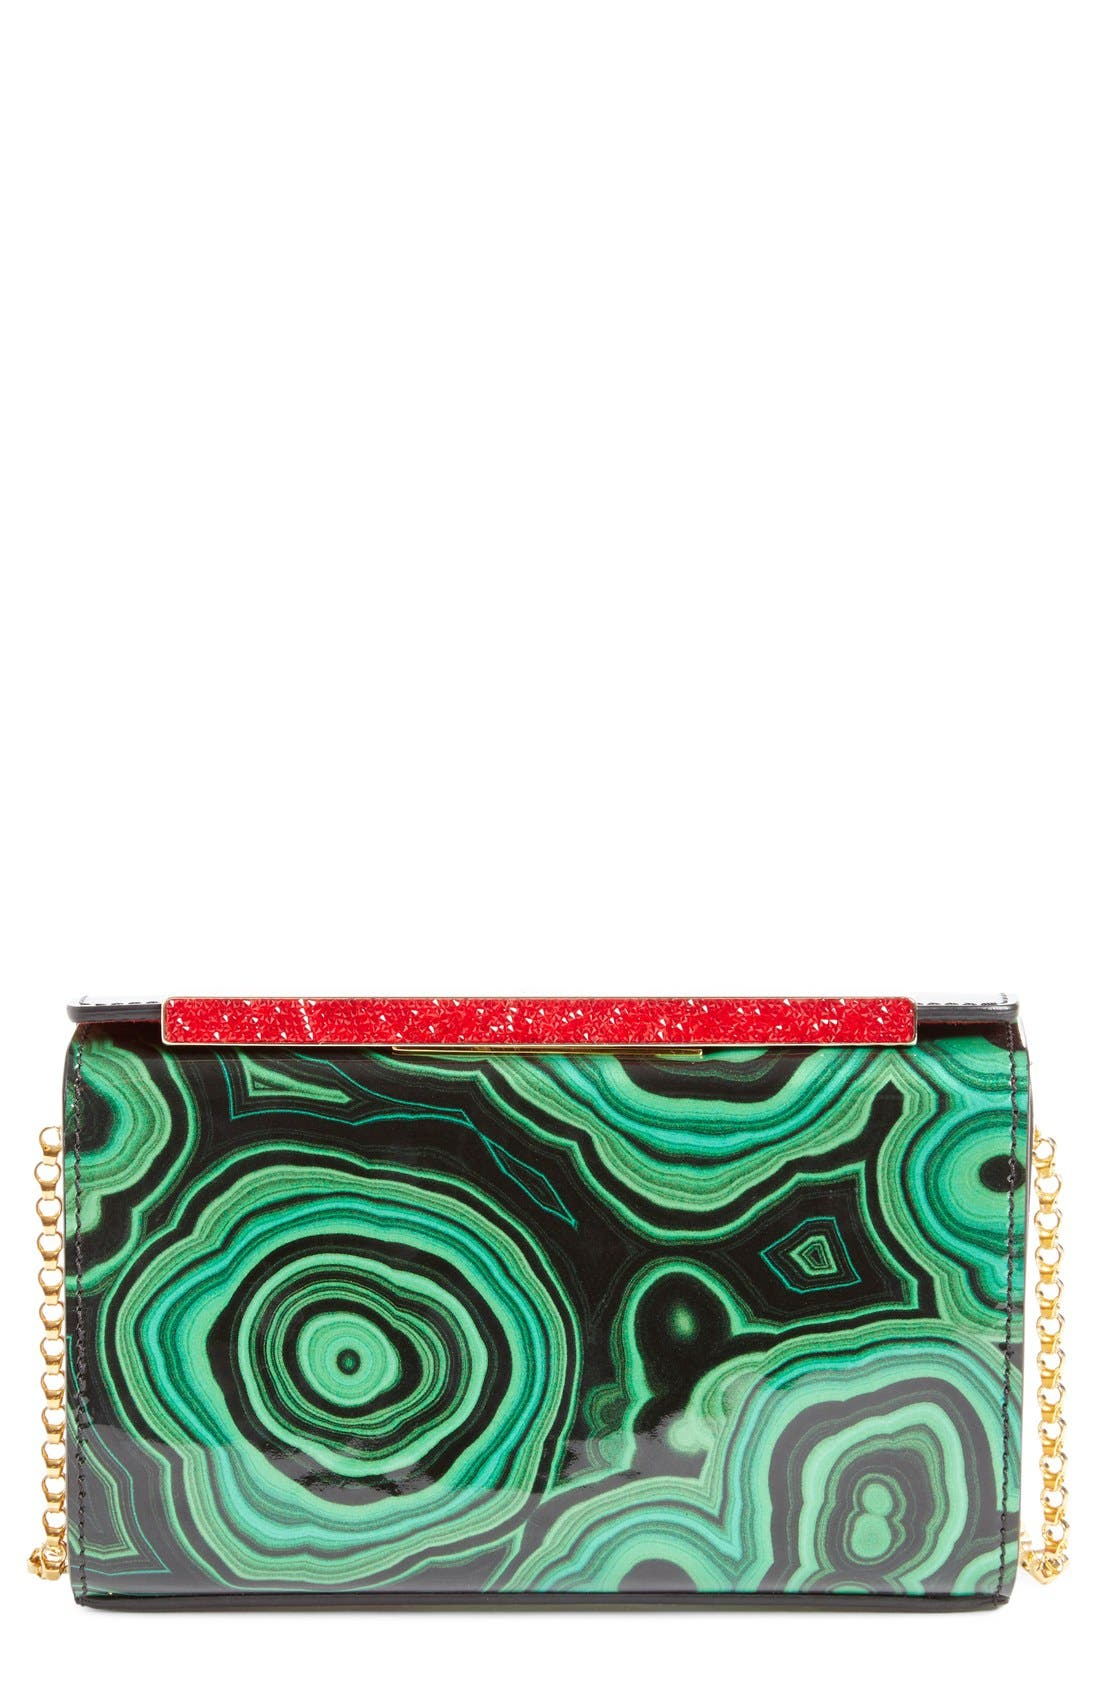 Alternate Image 1 Selected - Christian Louboutin 'Vanité' Printed Leather Clutch